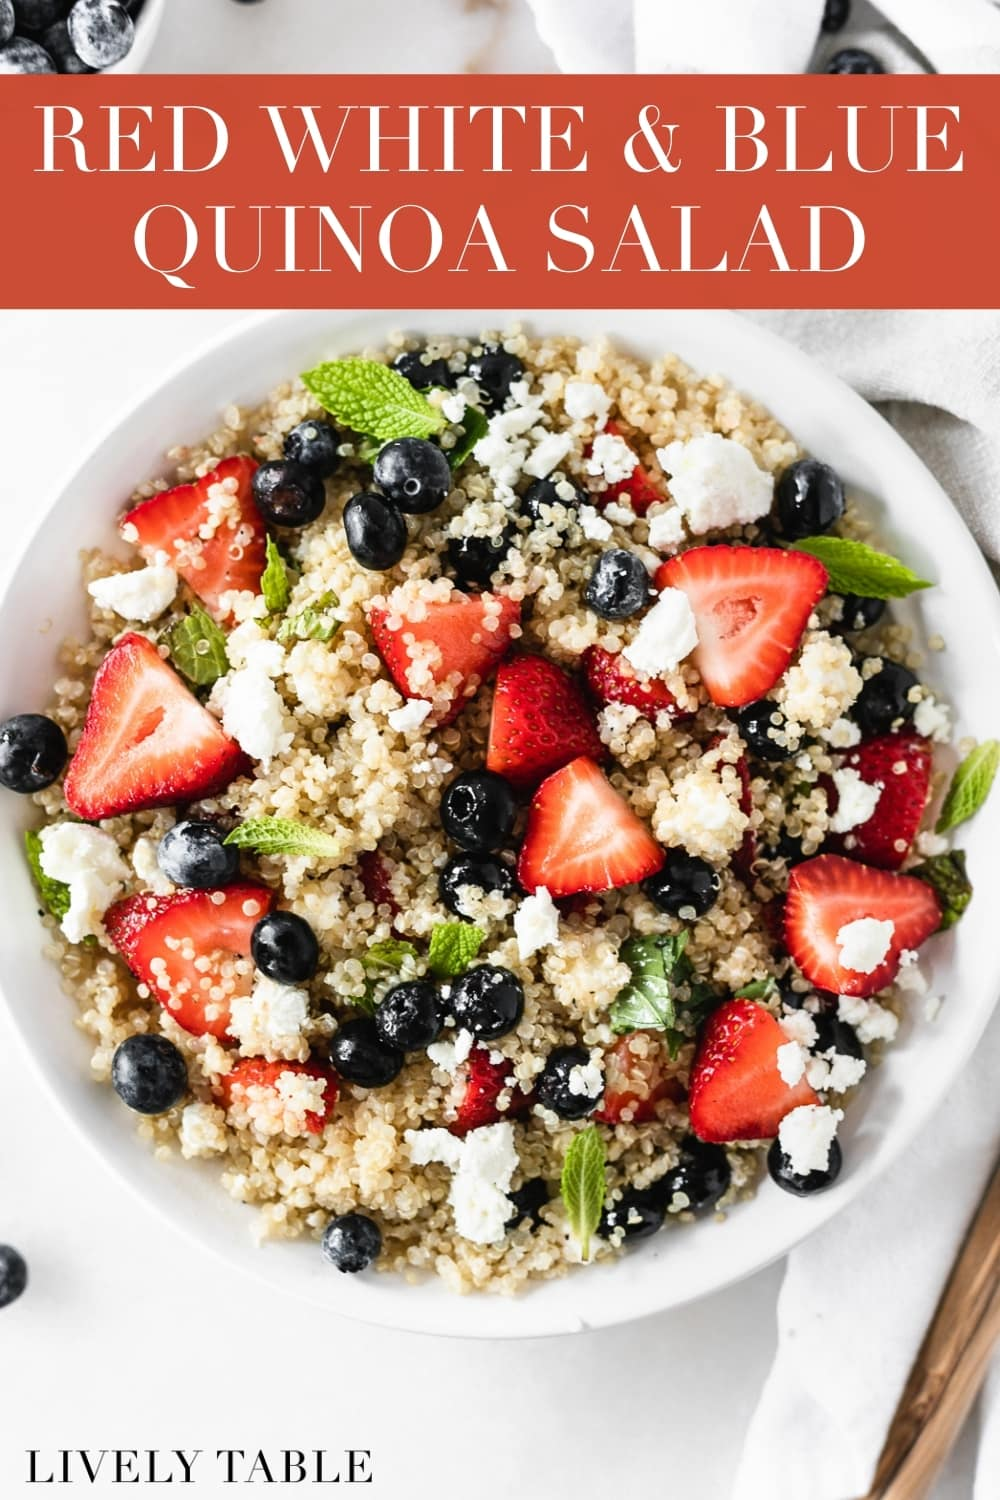 This fun and festive red, white and blue berry quinoa salad is the perfect patriotic side dish to bring to 4th of July parties, and all of your summer cookouts from Memorial Day to Labor Day! (#glutenfree, #vegetarian, #nutfree) #sponsored #sidedish #4thofJuly #redwhiteandblue #patriotic #summer #berry #recipe #healthy #easy #quinoa